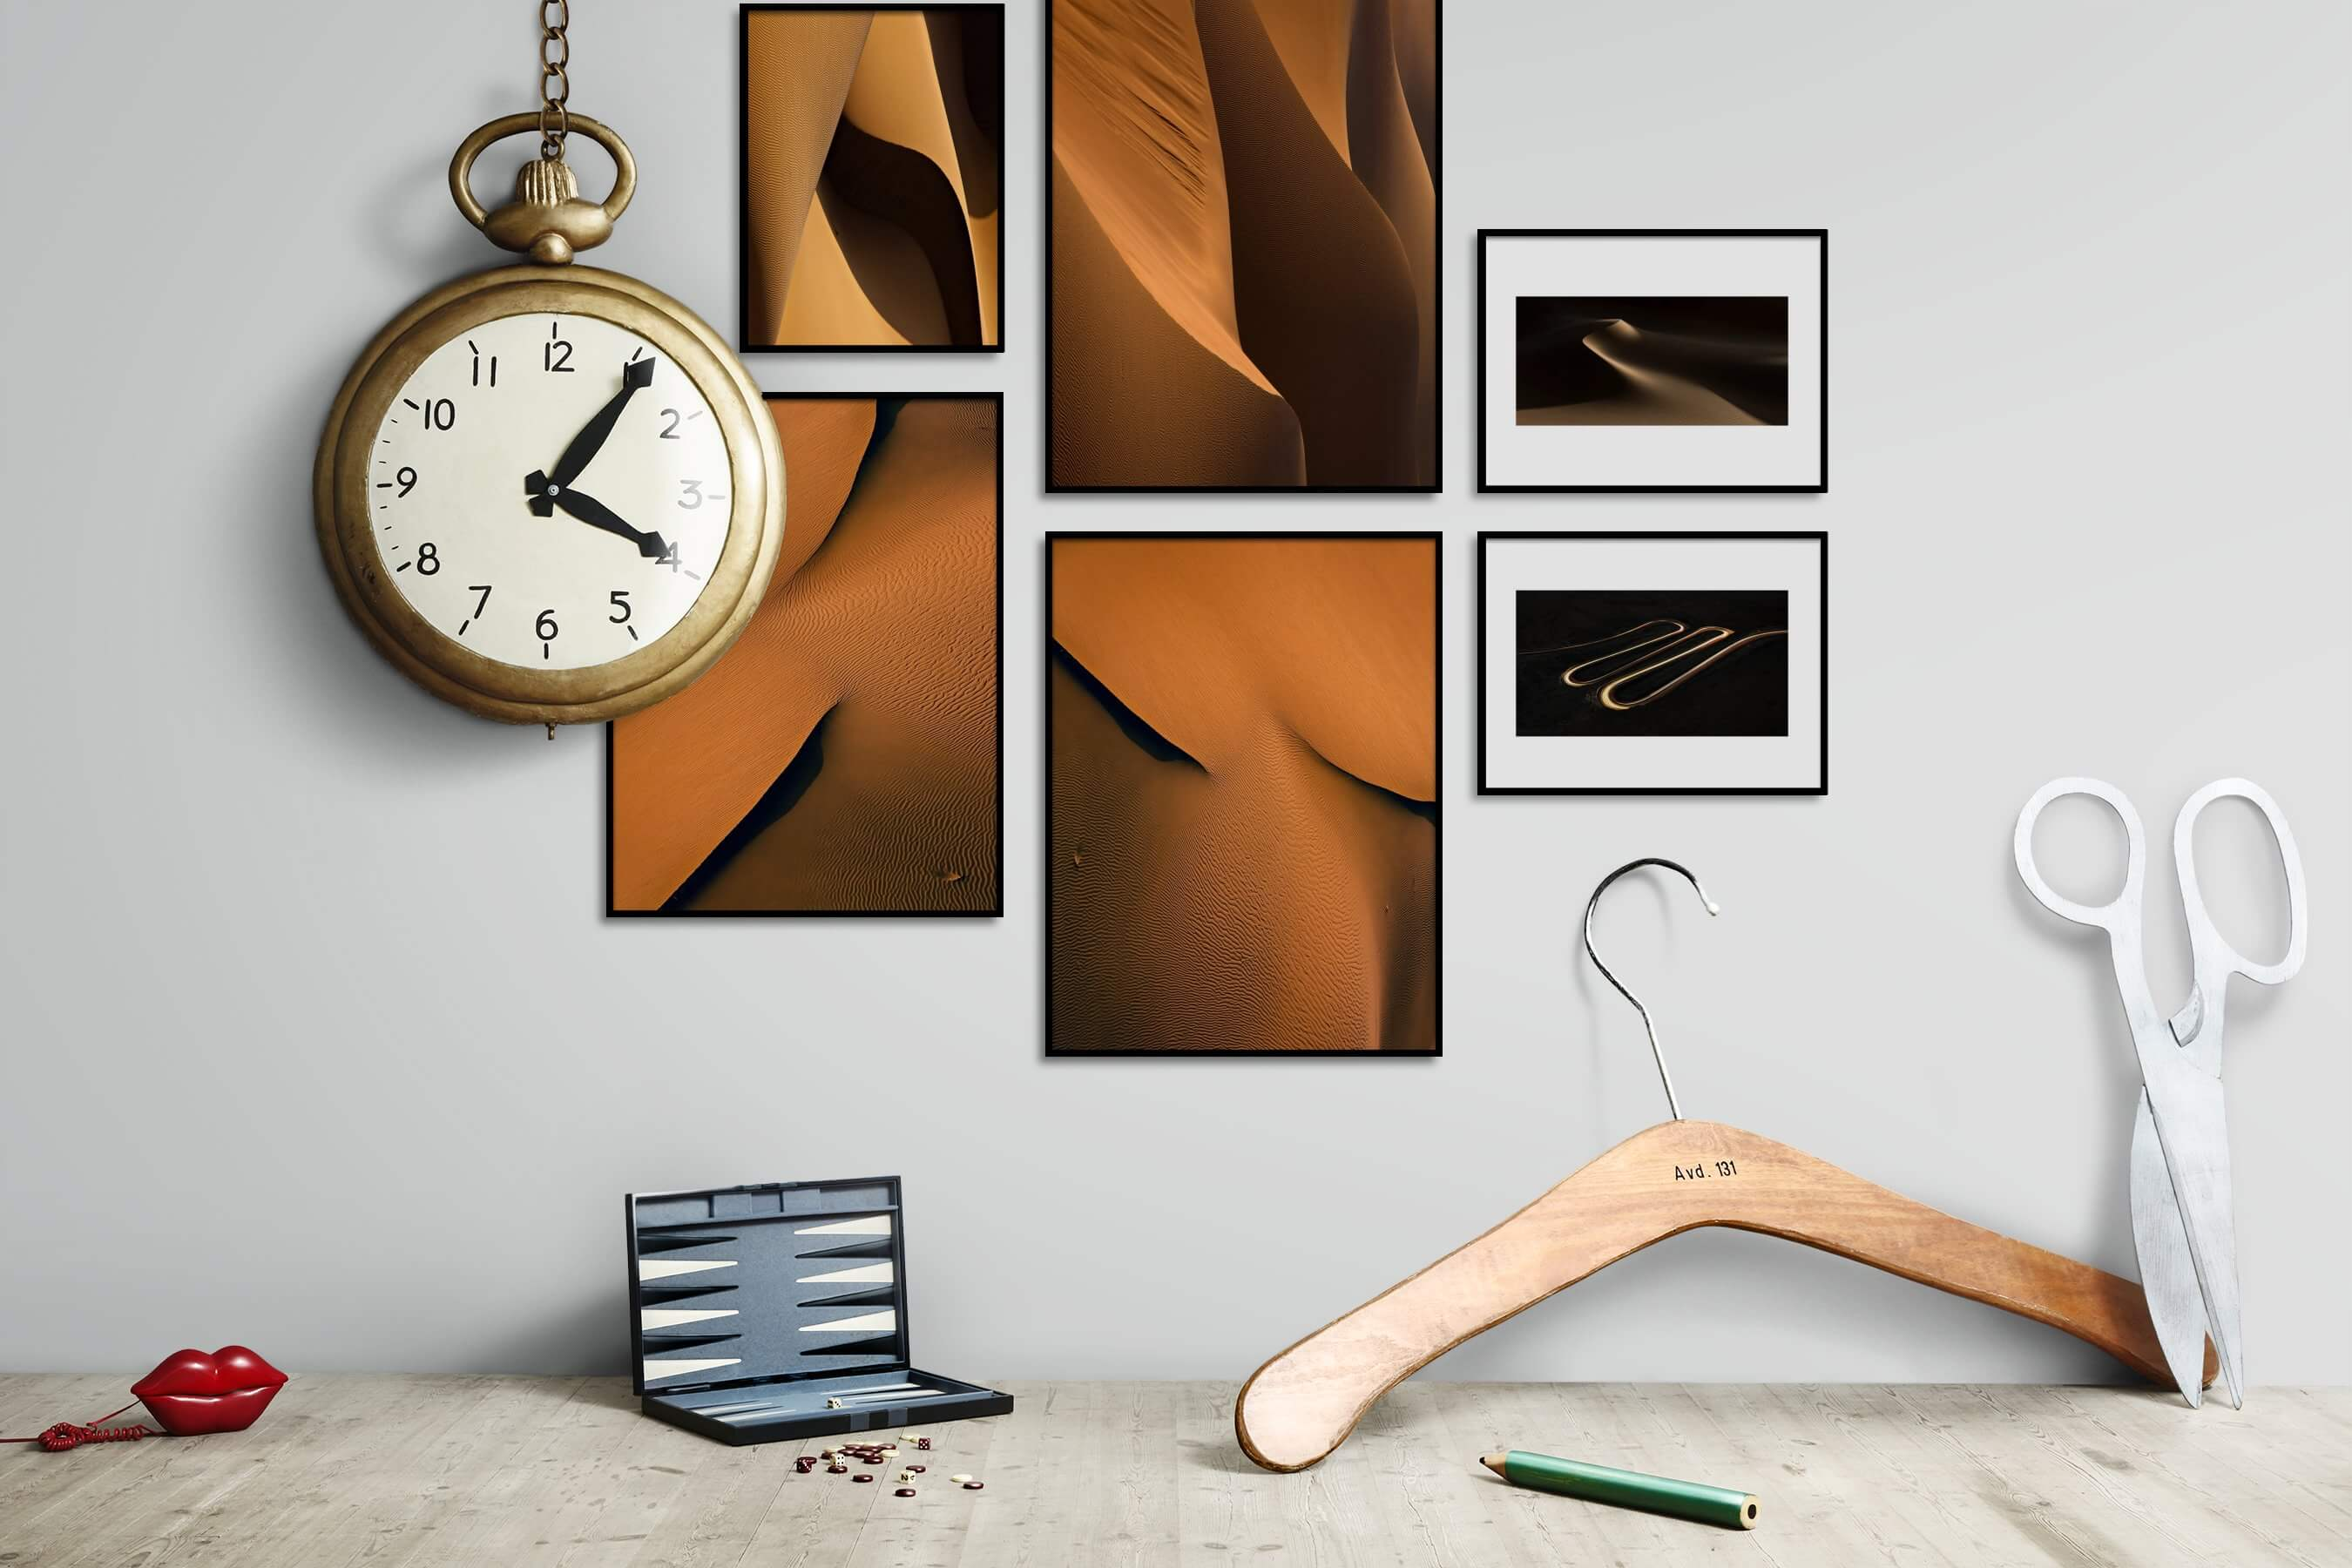 Gallery wall idea with six framed pictures arranged on a wall depicting For the Moderate, Nature, and For the Minimalist